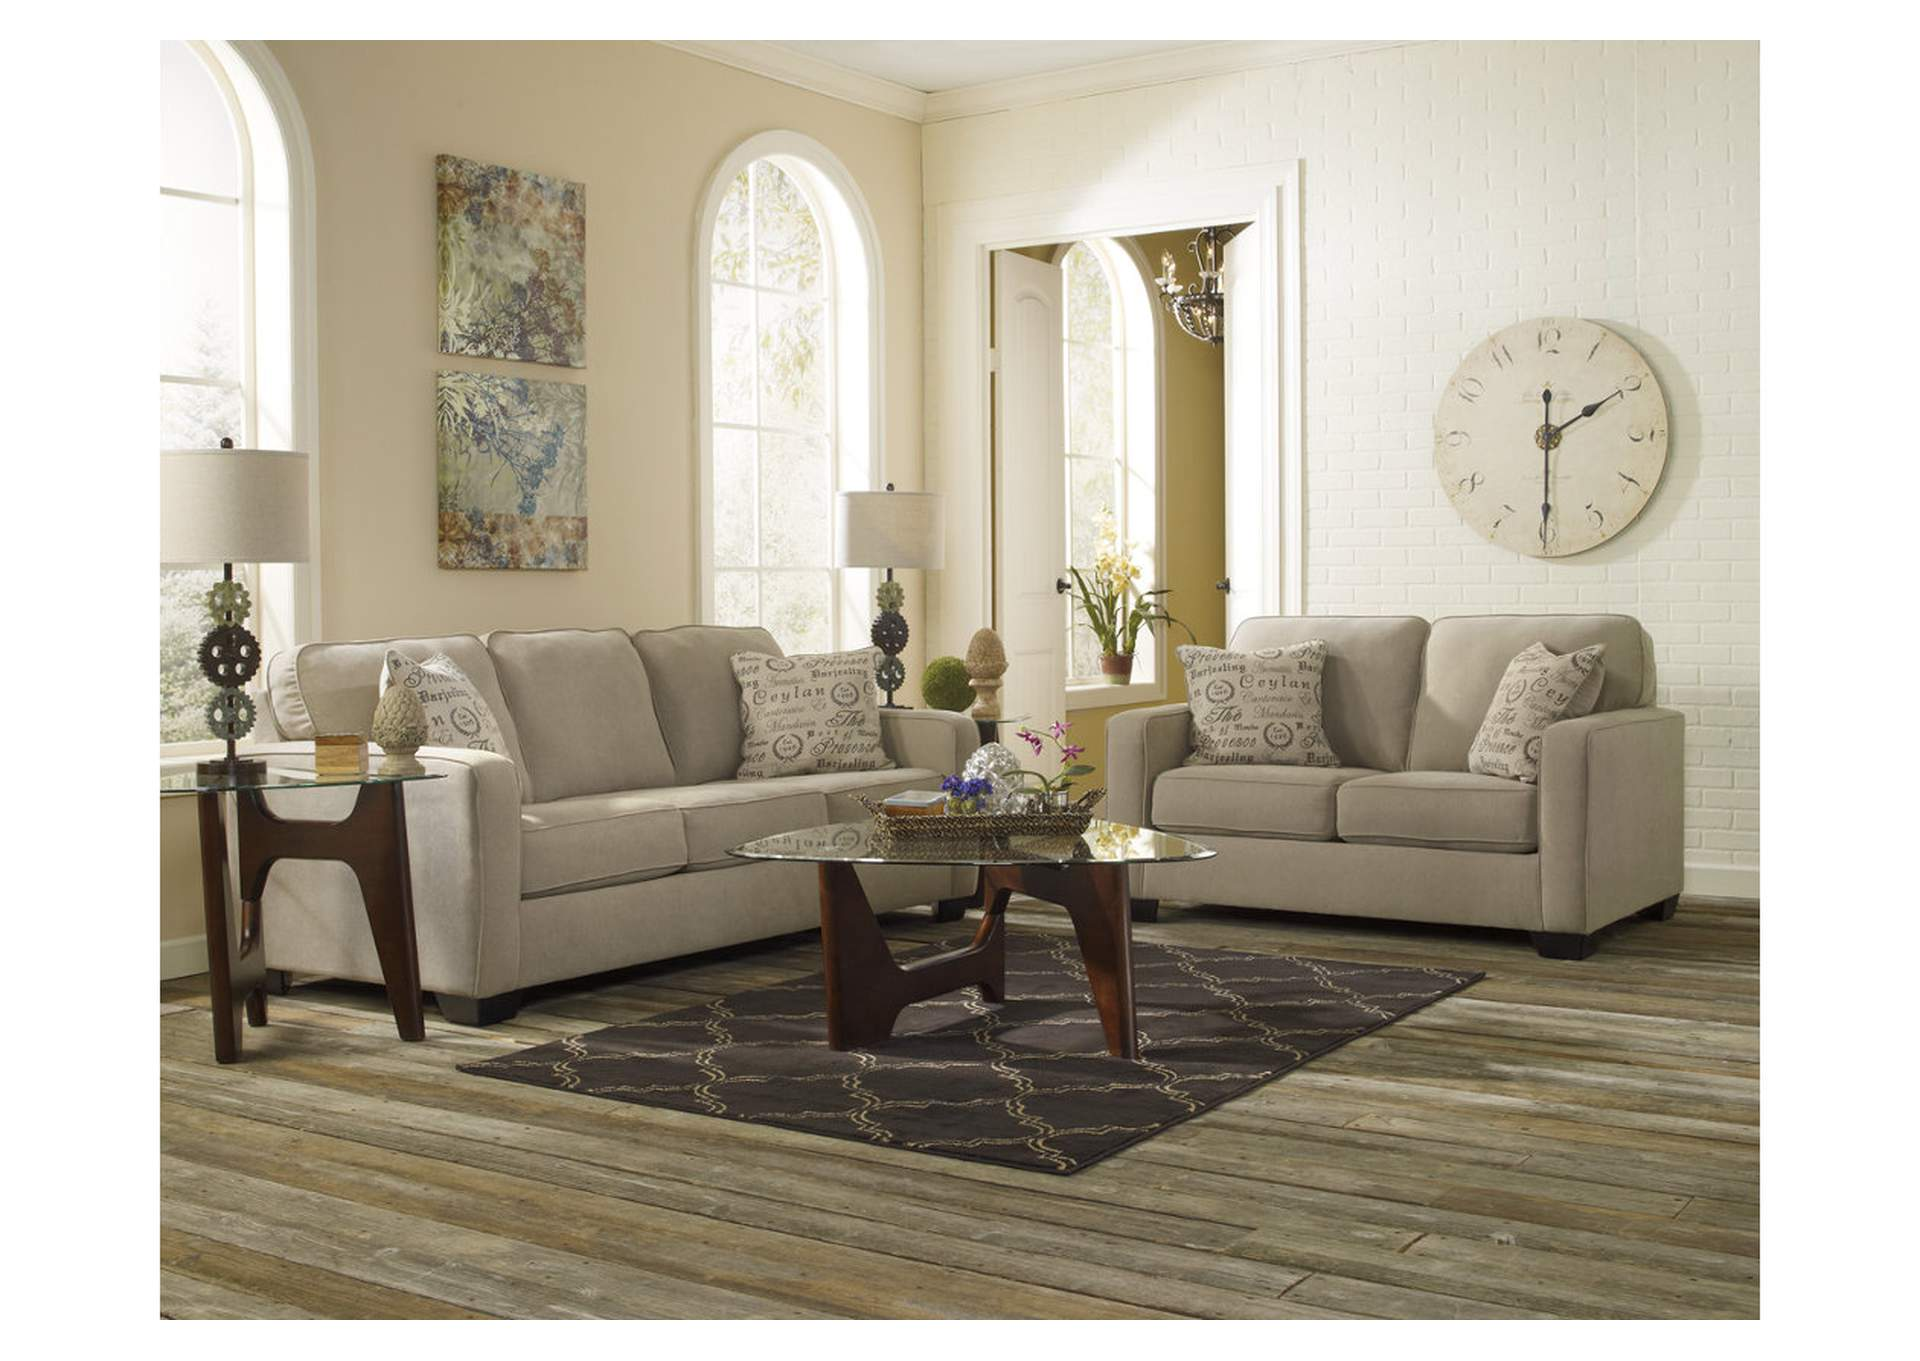 Alenya Quartz Sofa & Loveseat,Signature Design By Ashley